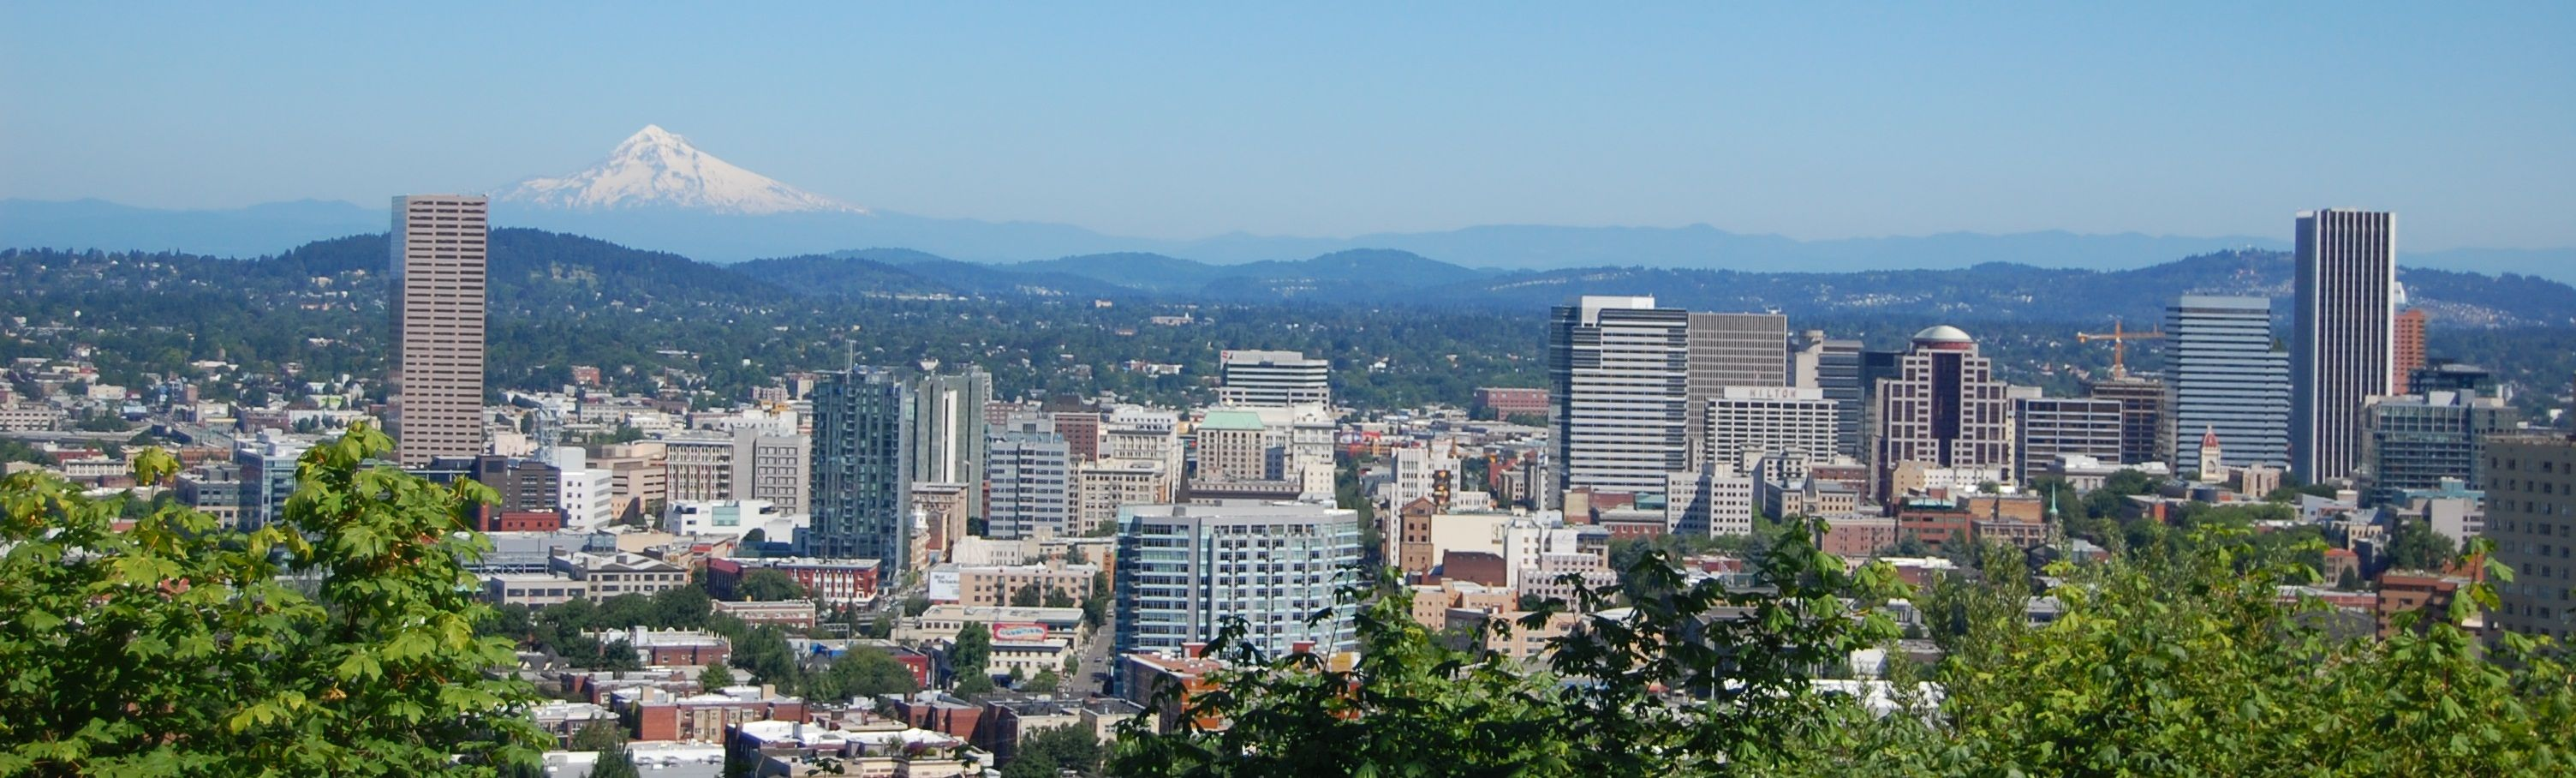 Jobs Hiring In Portland Or Moving To Portland Portland City